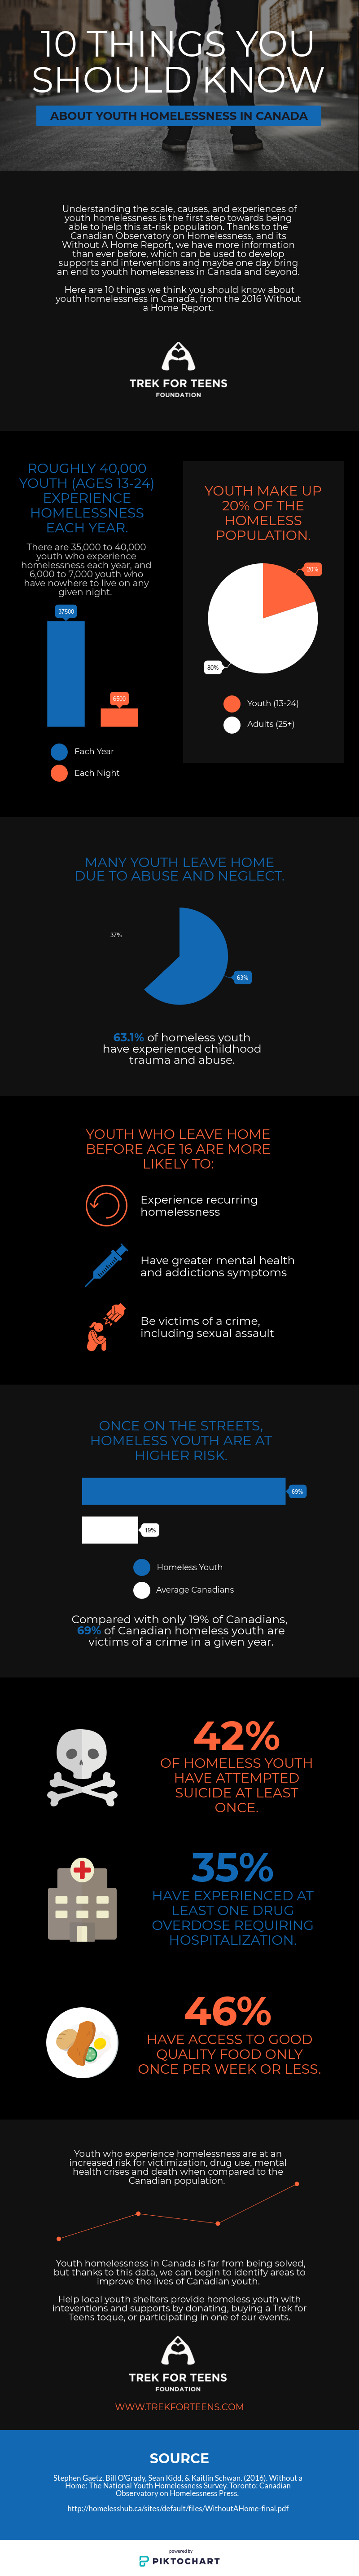 Youth Homelessness in Canada TTF